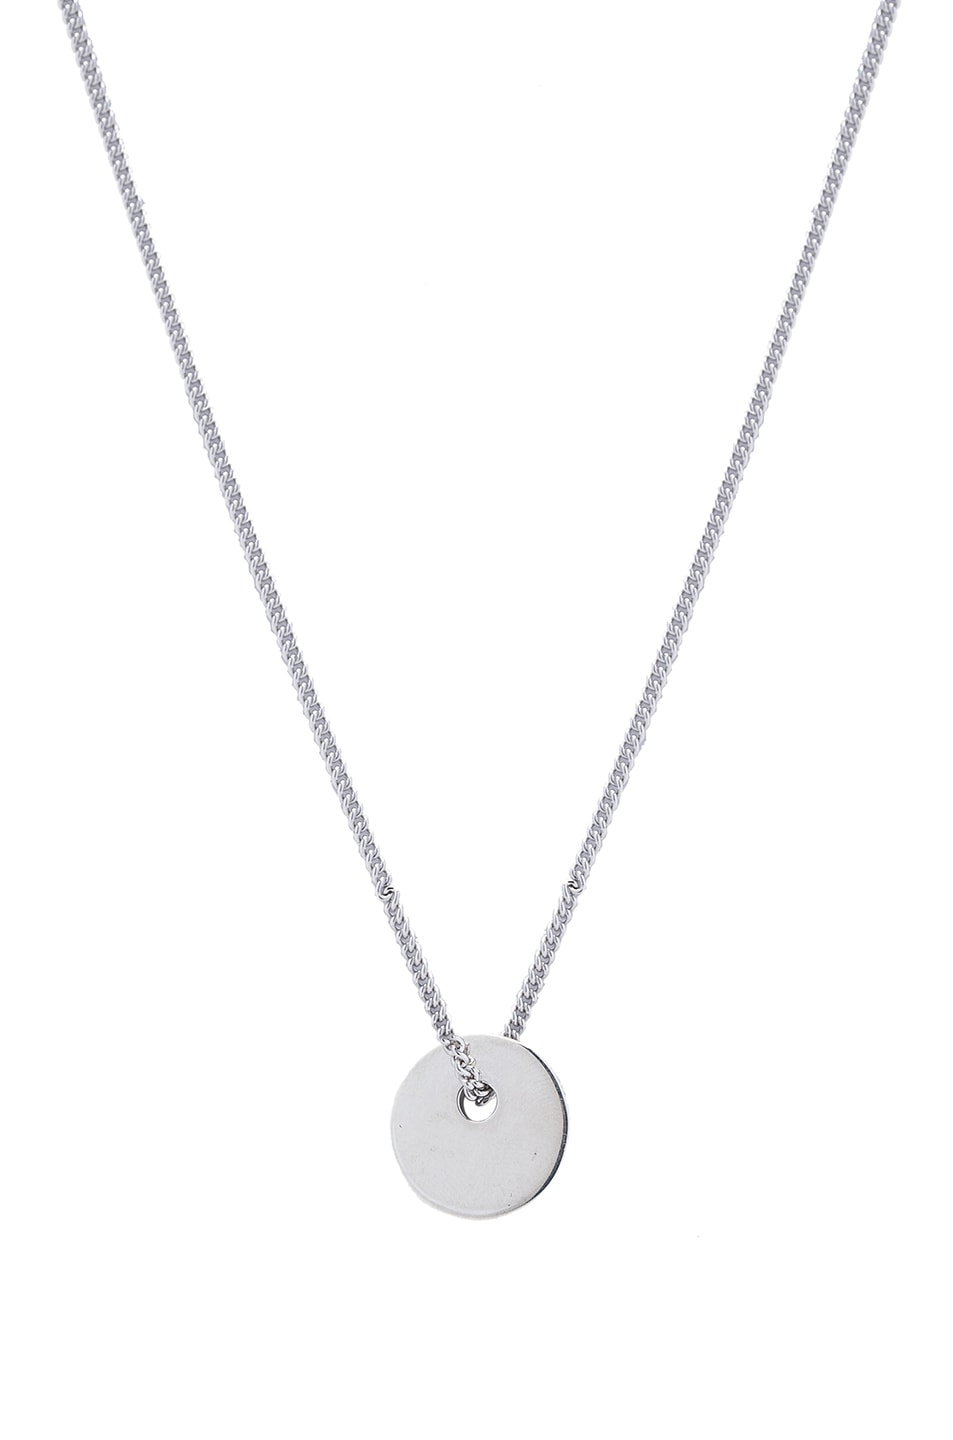 apc product fwrd silver serge in of necklace image a p c